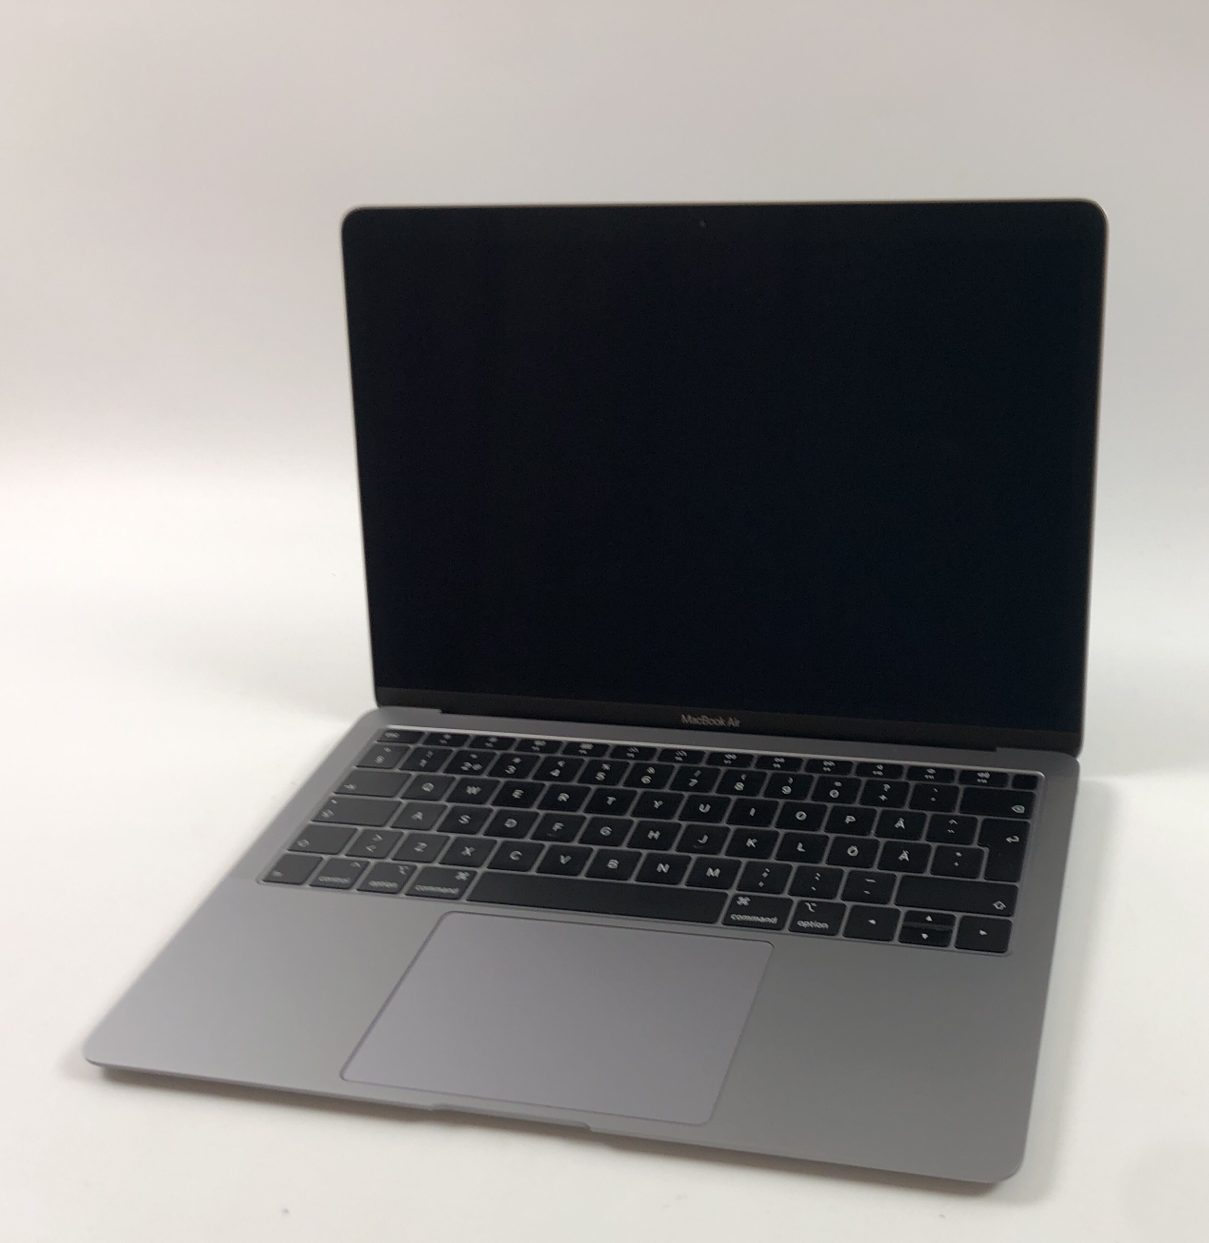 "MacBook Air 13"" Late 2018 (Intel Core i5 1.6 GHz 8 GB RAM 128 GB SSD), Space Gray, Intel Core i5 1.6 GHz, 8 GB RAM, 128 GB SSD, Kuva 1"